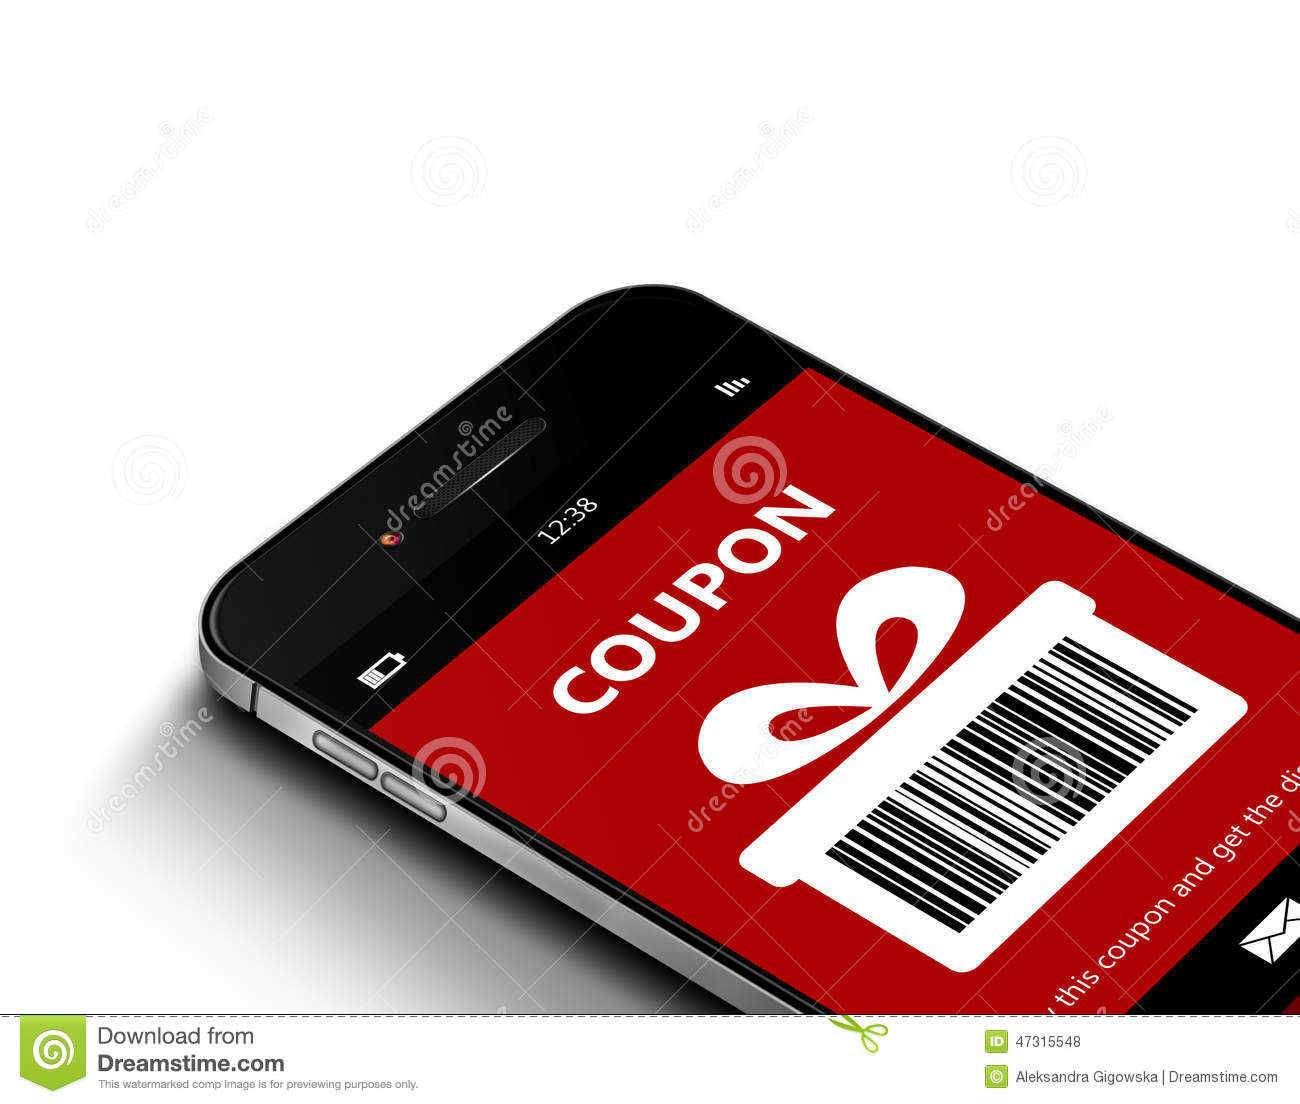 Discount coupons on mobile phones